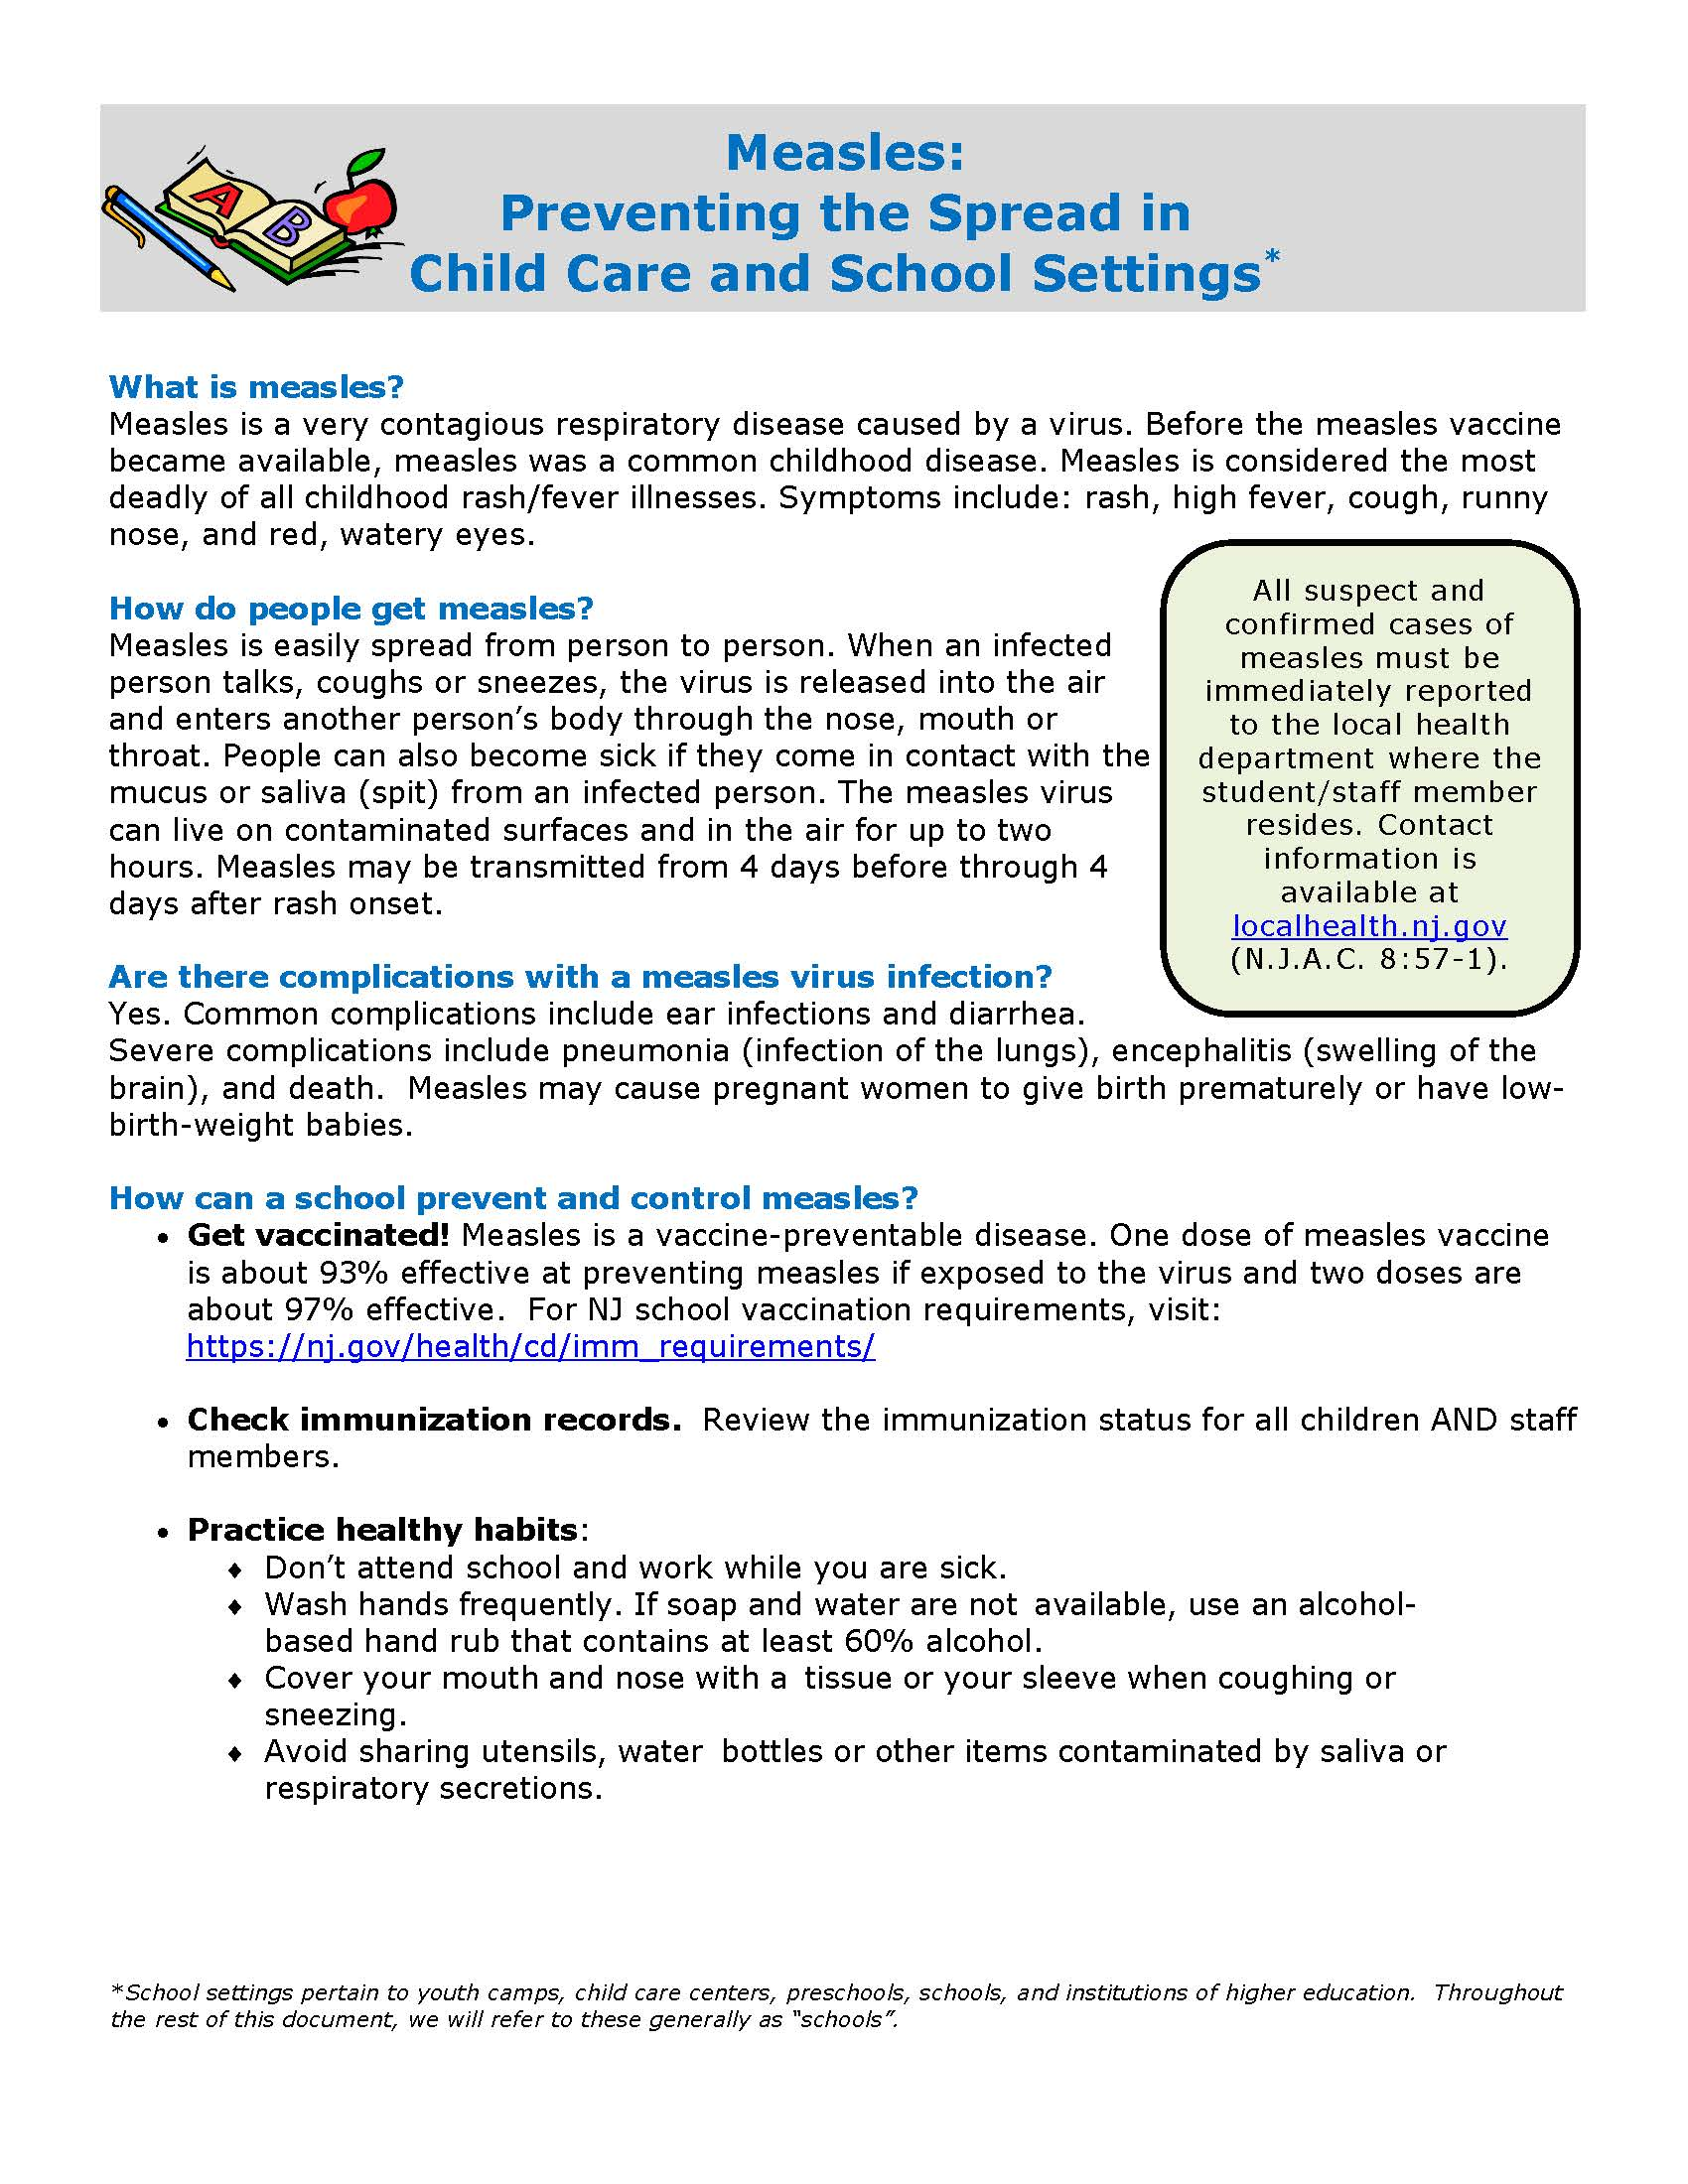 measles guidance schools Page 1